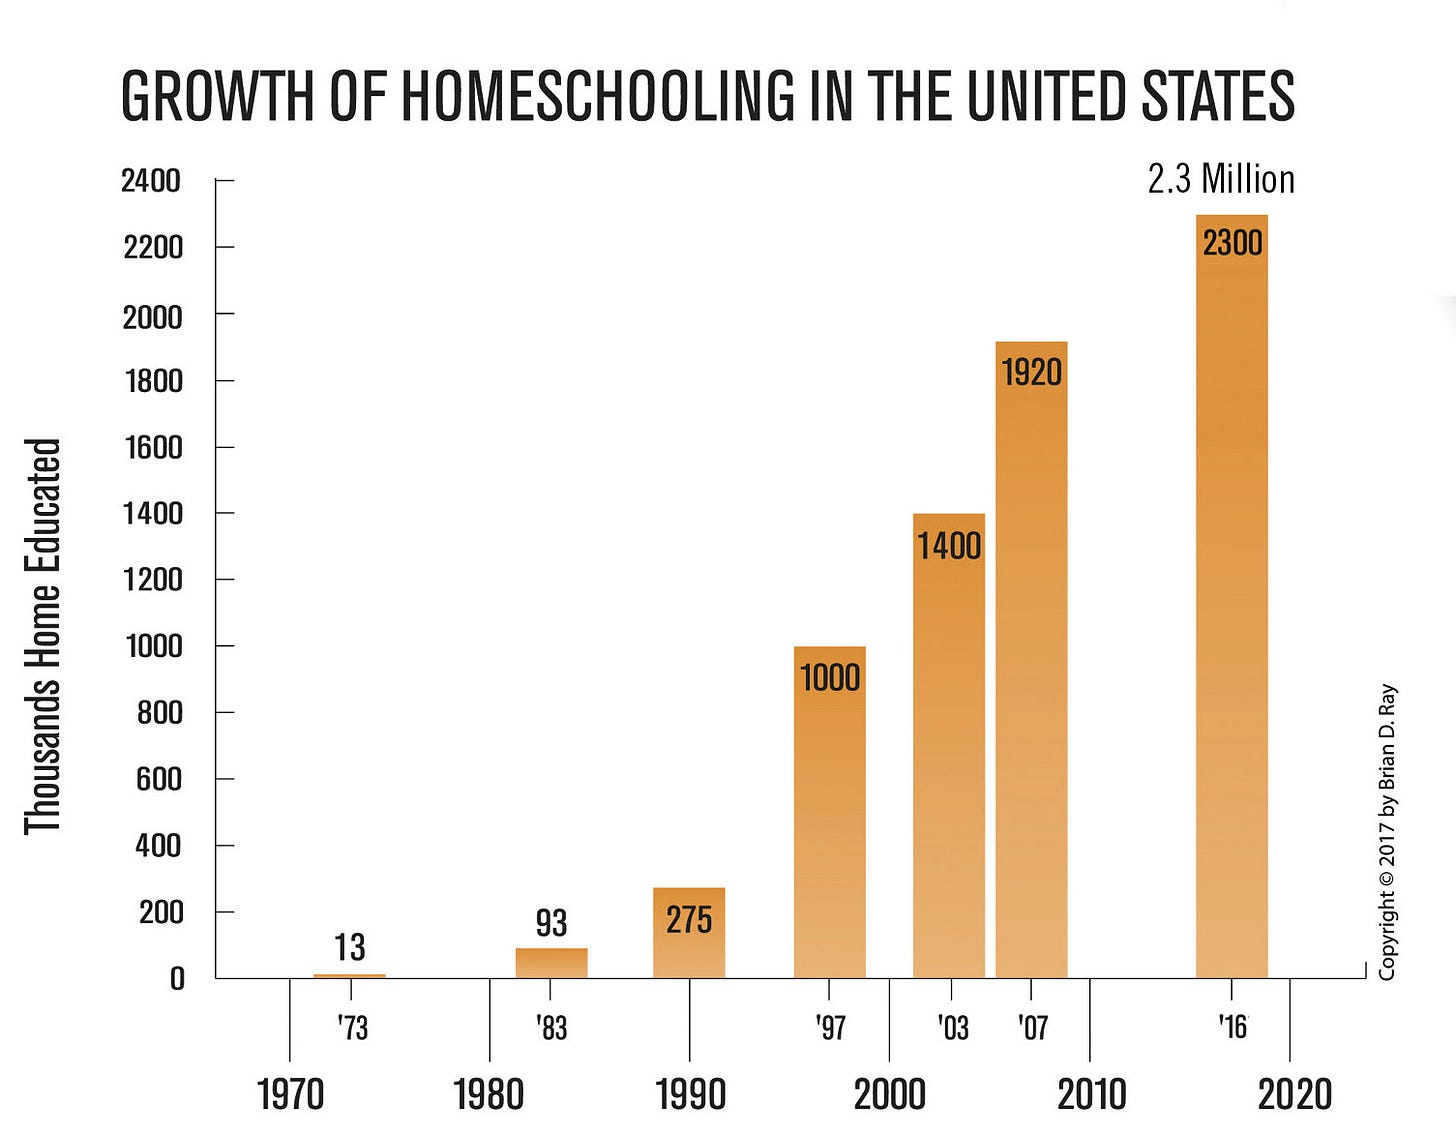 Homeschooling: The Research, Scholarly articles, studies, facts, research